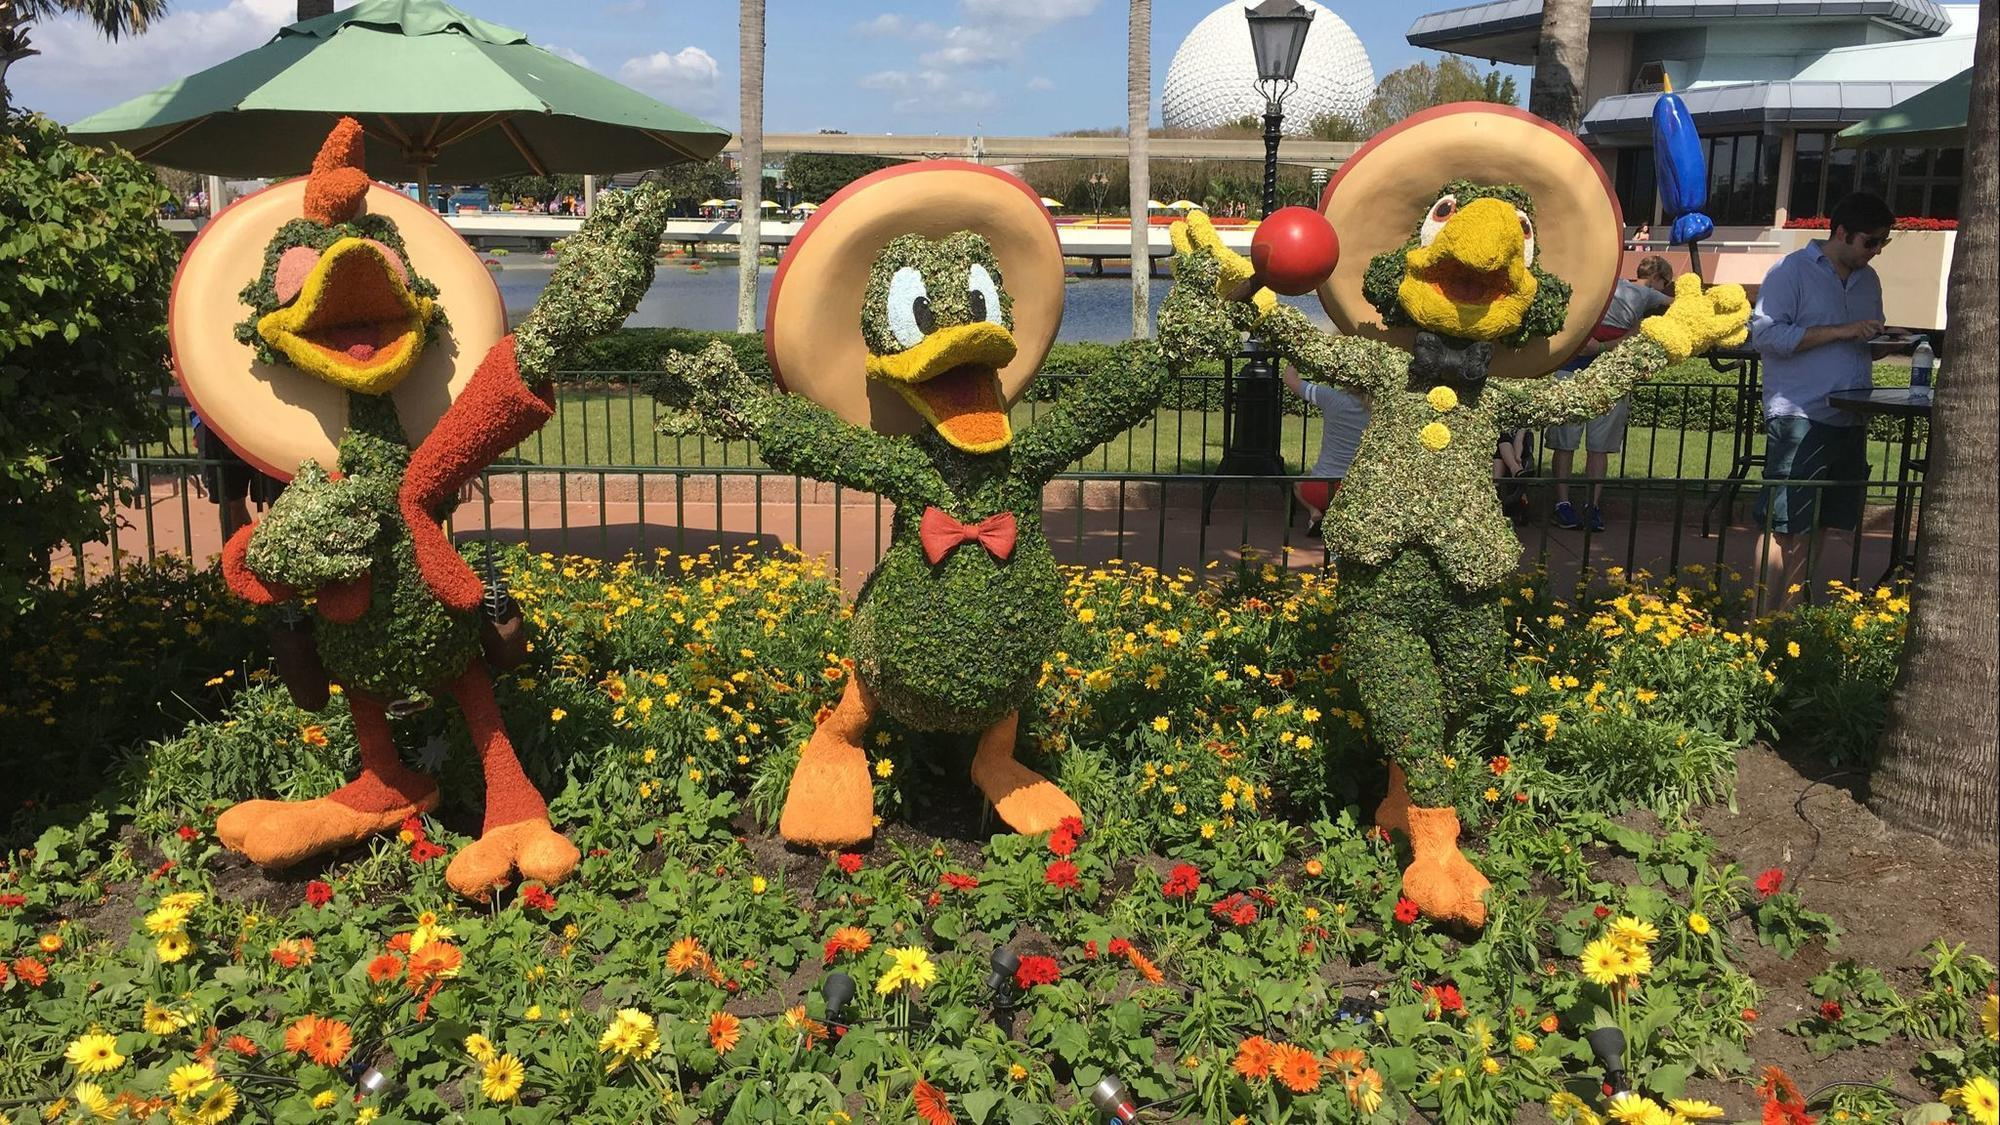 First Look Epcot International Flower Garden Festival For 2018 Polygo Minie Mouse By Sentinel Orlando